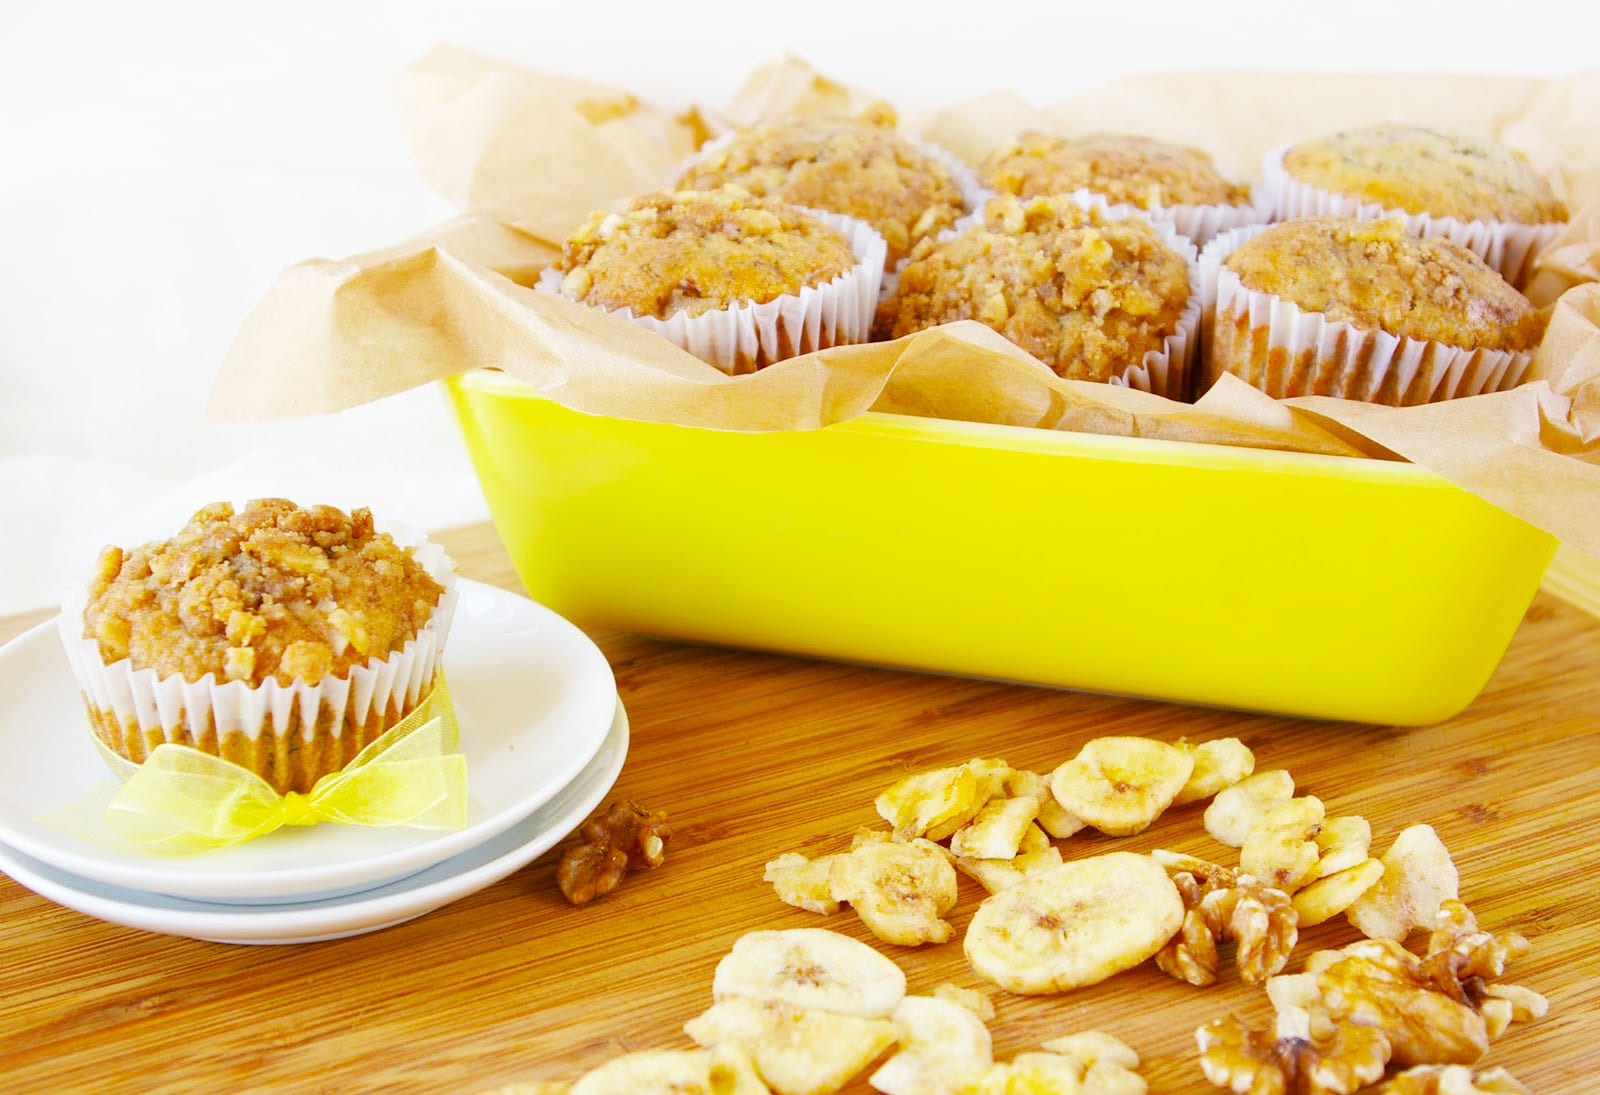 Banana Walnut Muffins with Banana Chip Streusel